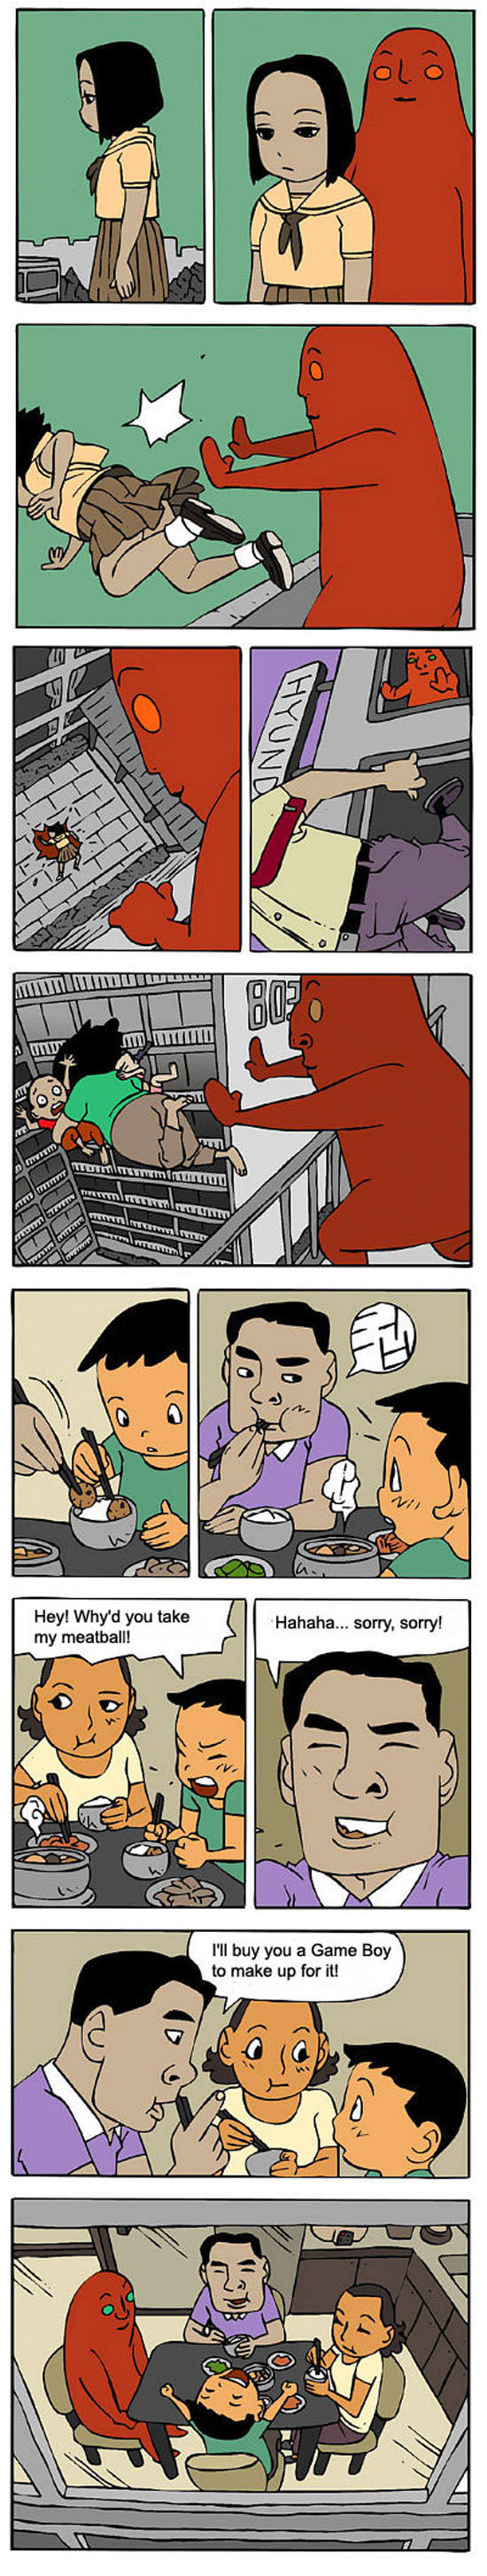 Funny Korean Comic Strips. Part 2